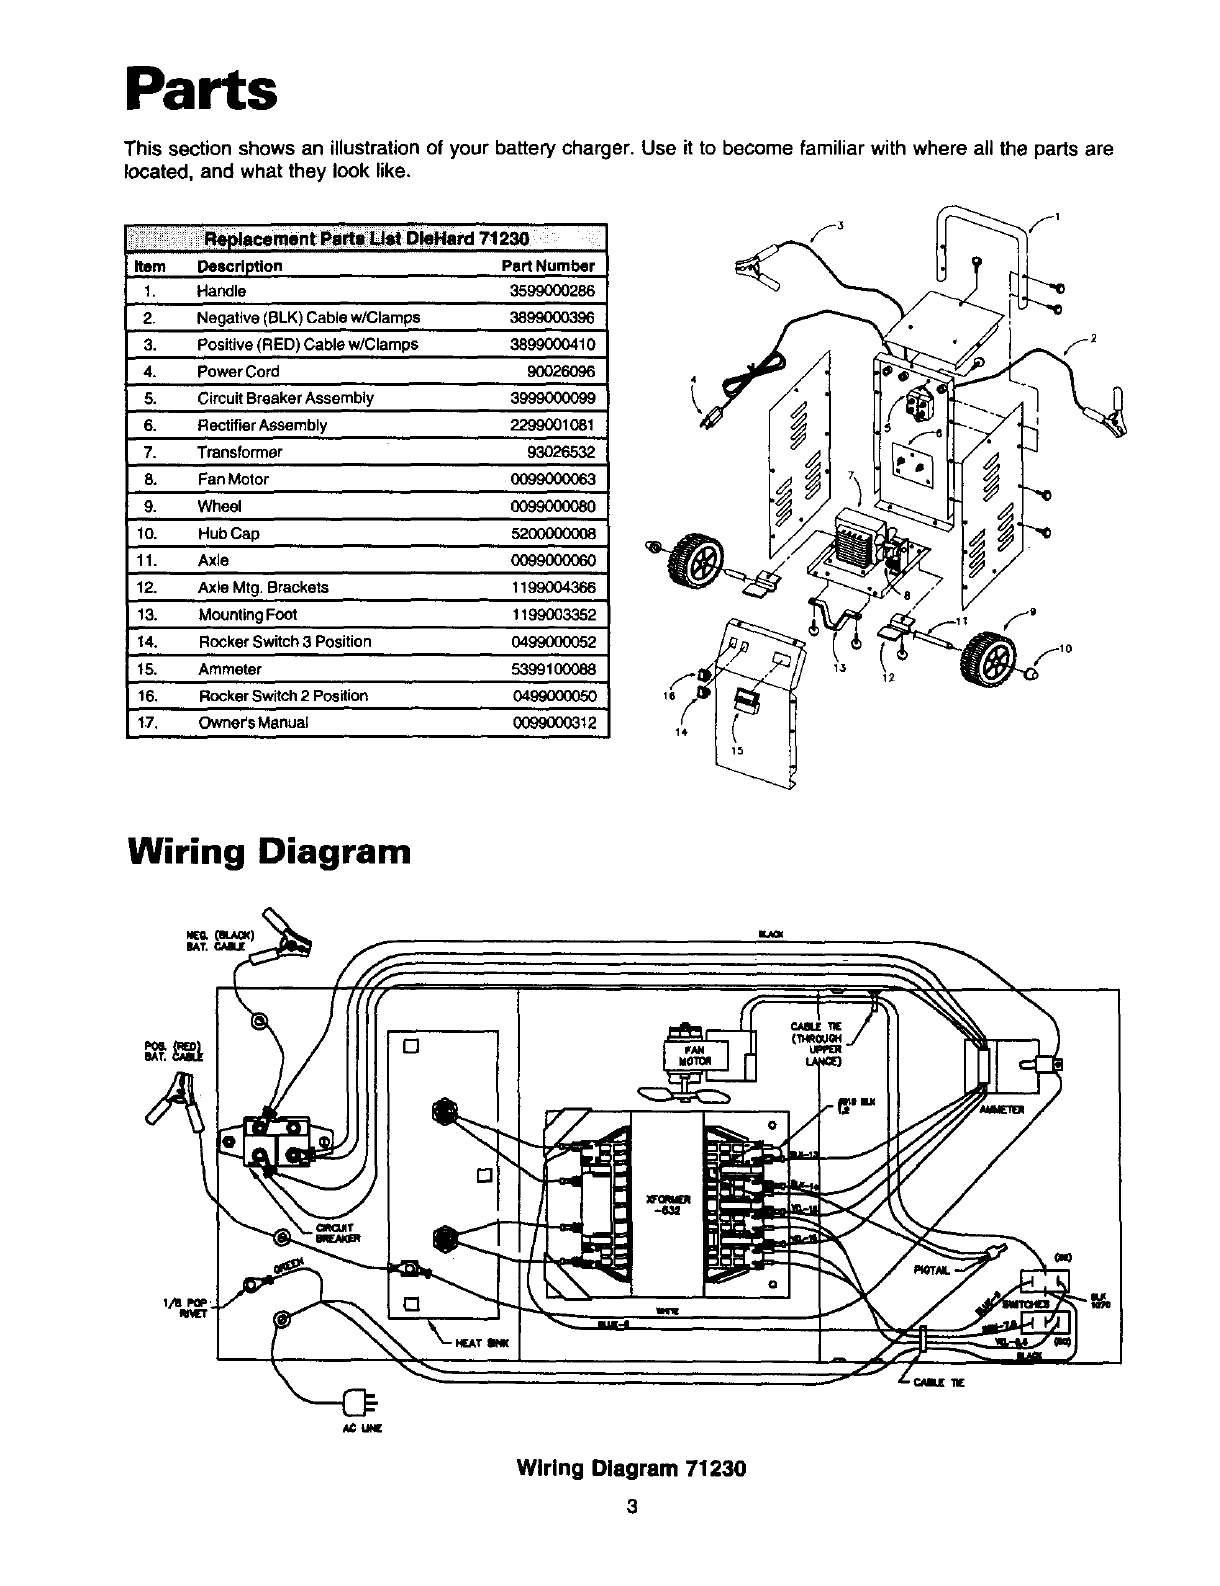 Description additionally Shocking Lockout Ezgo Wiring Diagram Swithc Reverse Buzzer Transmission Starter Generator Engine Kill Unit Sending moreover Taylor Dunn Wiring Diagram as well MB5h 7653 likewise 33893 What Is The Purpose Of An Alternator On Ship. on electrical generator wiring diagram